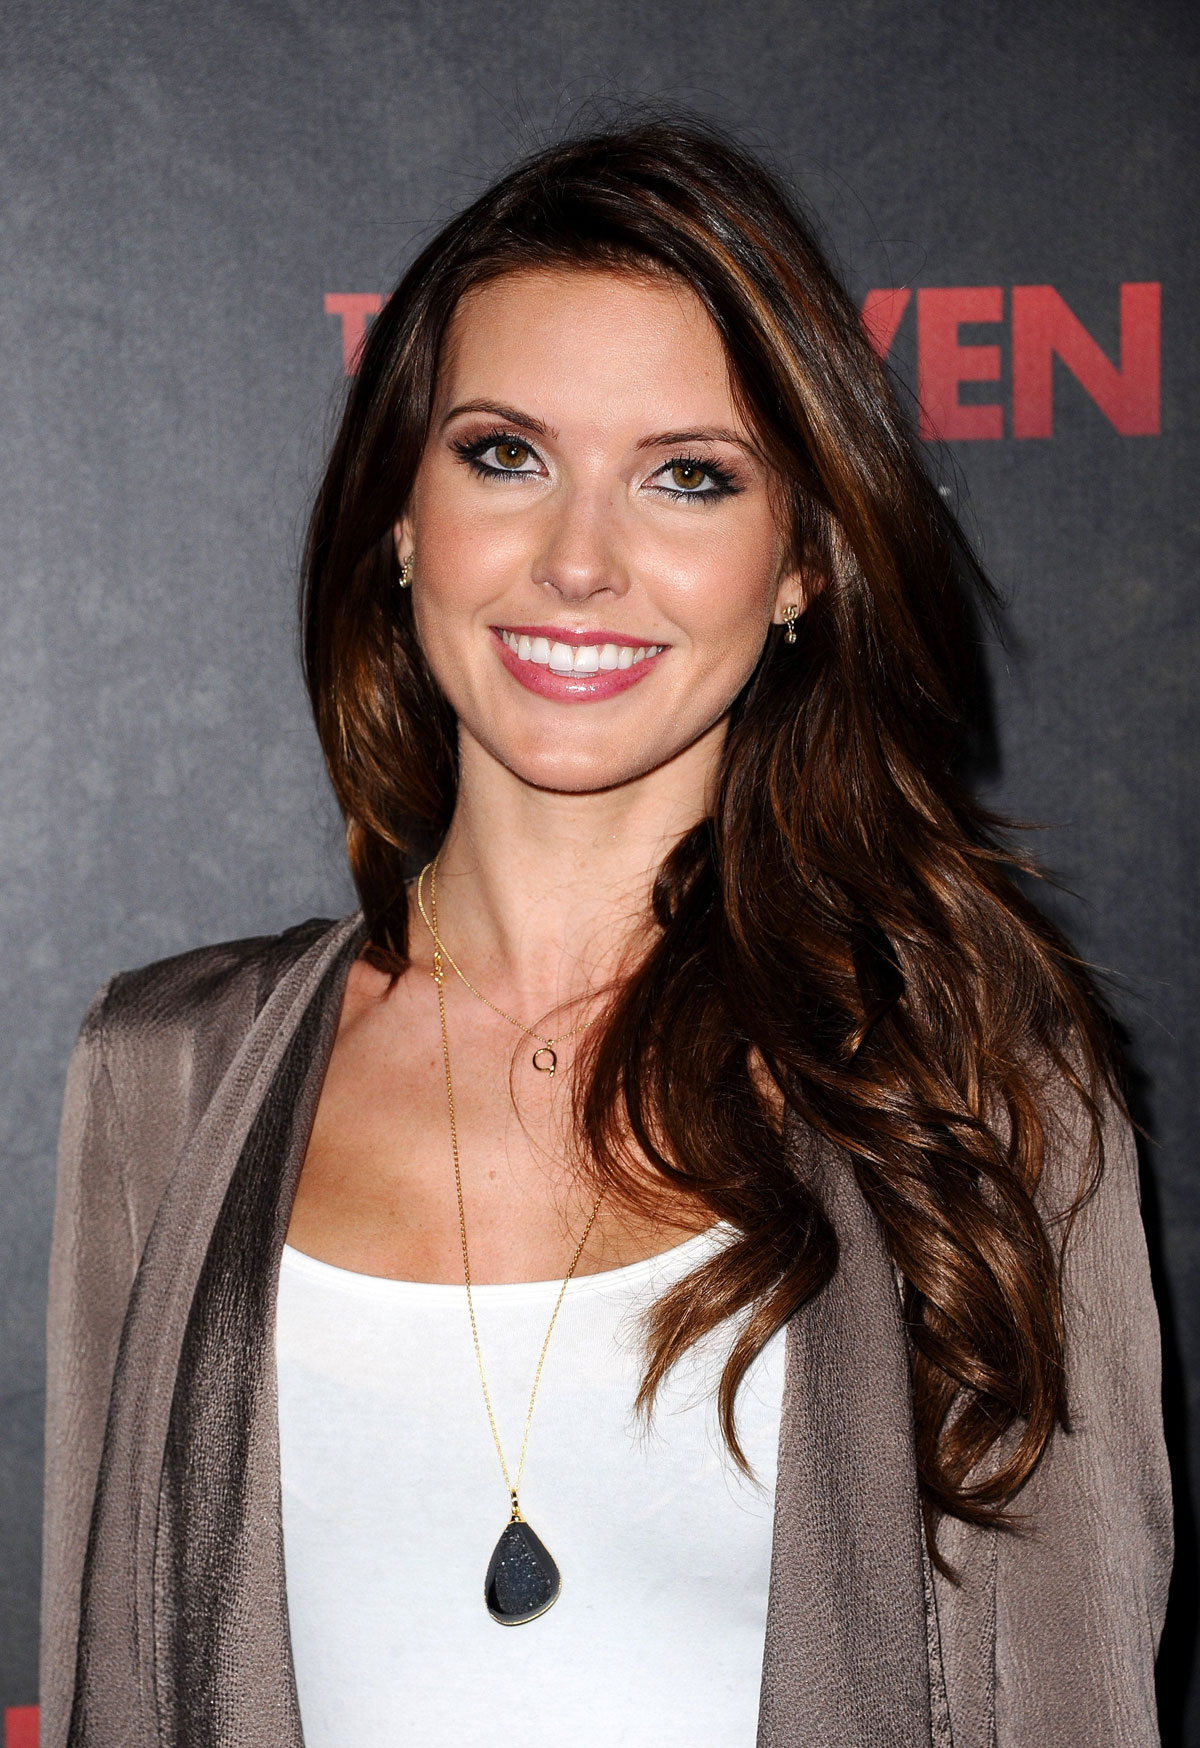 Forum on this topic: SoCal Val, audrina-patridge/